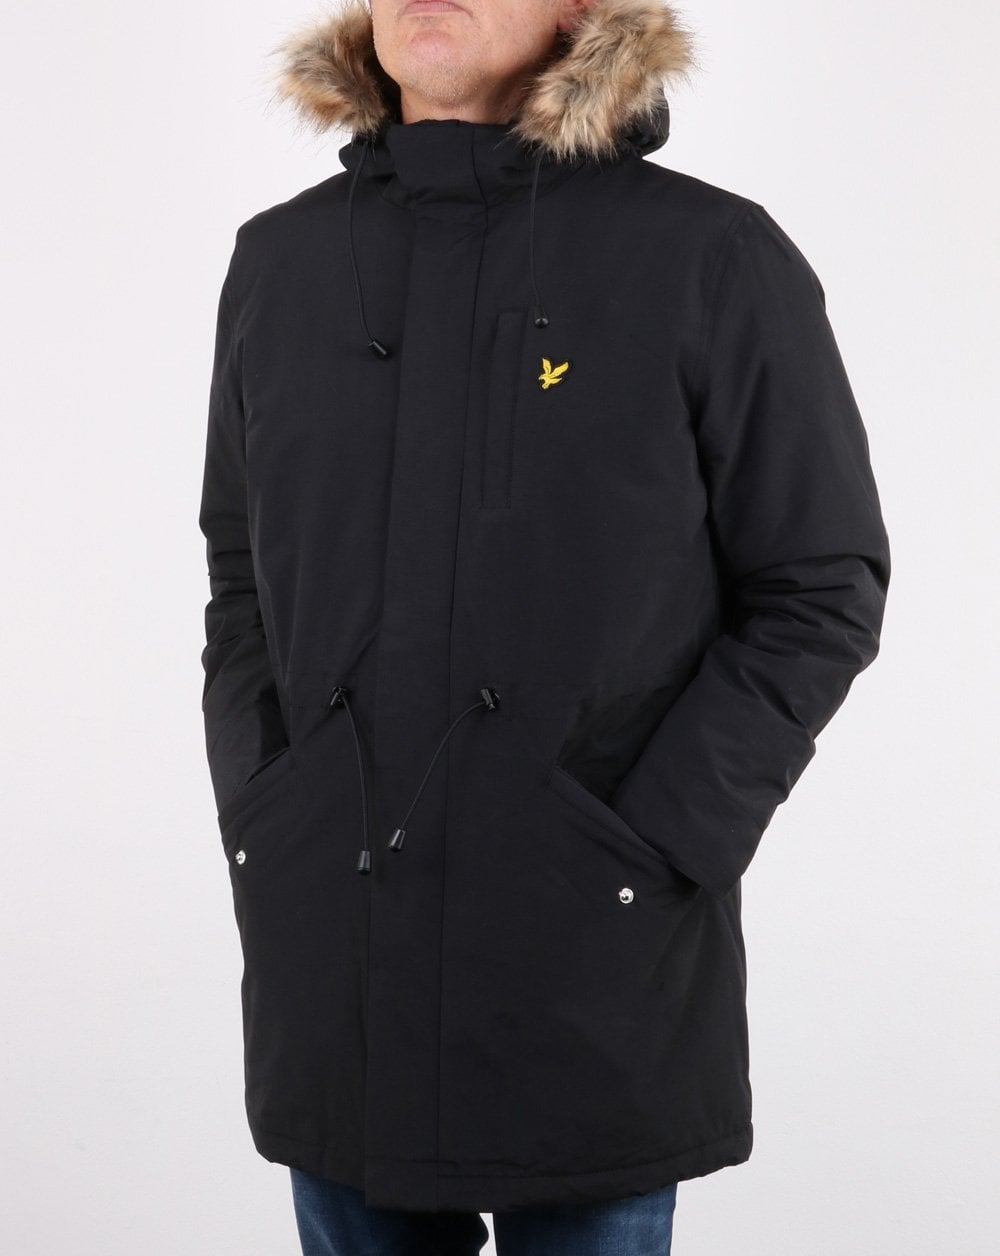 lyle and scott winter weight microfleece lined parka. Black Bedroom Furniture Sets. Home Design Ideas